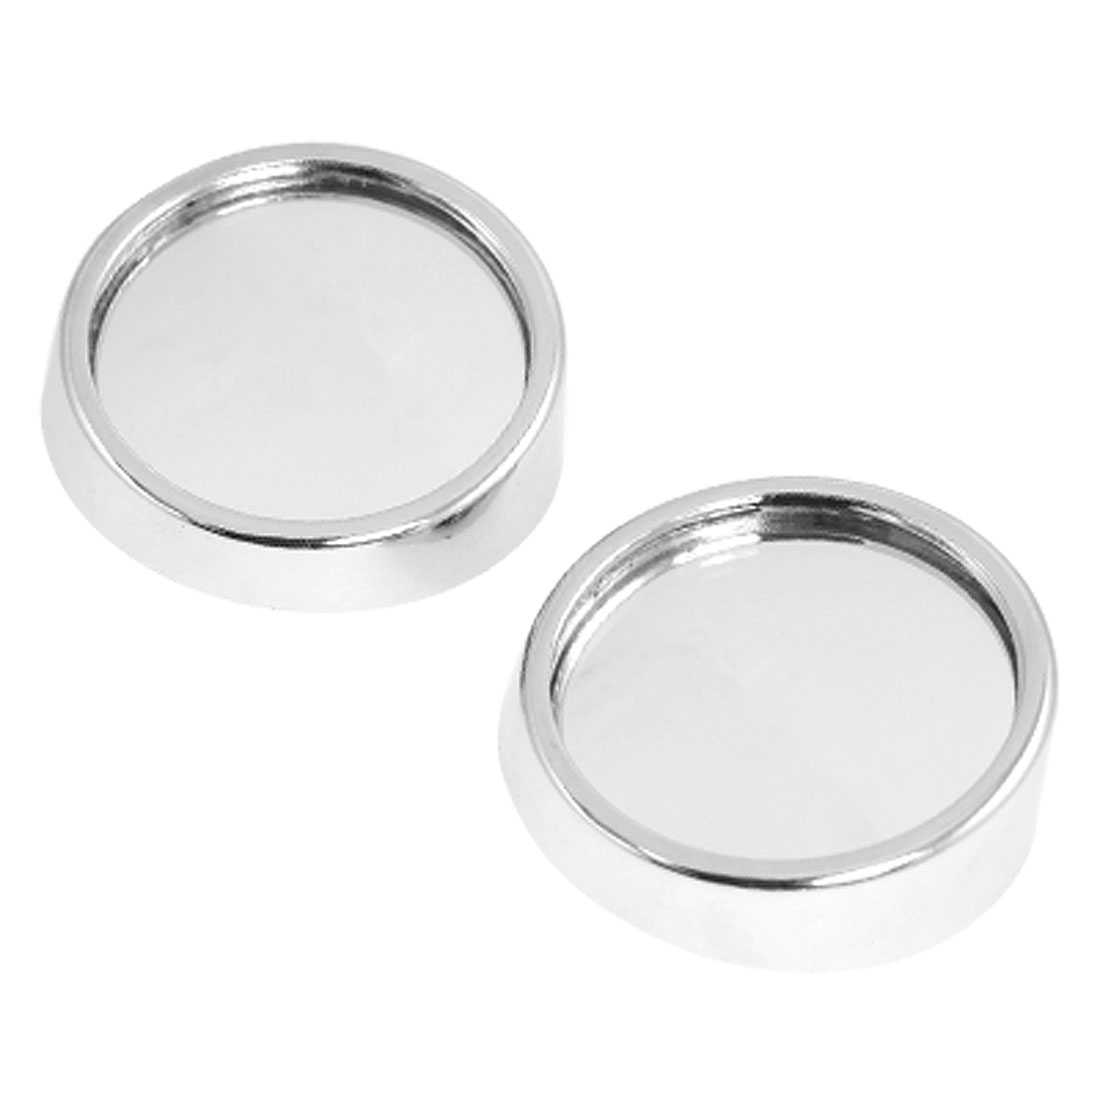 "Vehicle Car 2.1"" Diameter Round Convex Stick-on Blind Spot Mirror 2 Pcs"